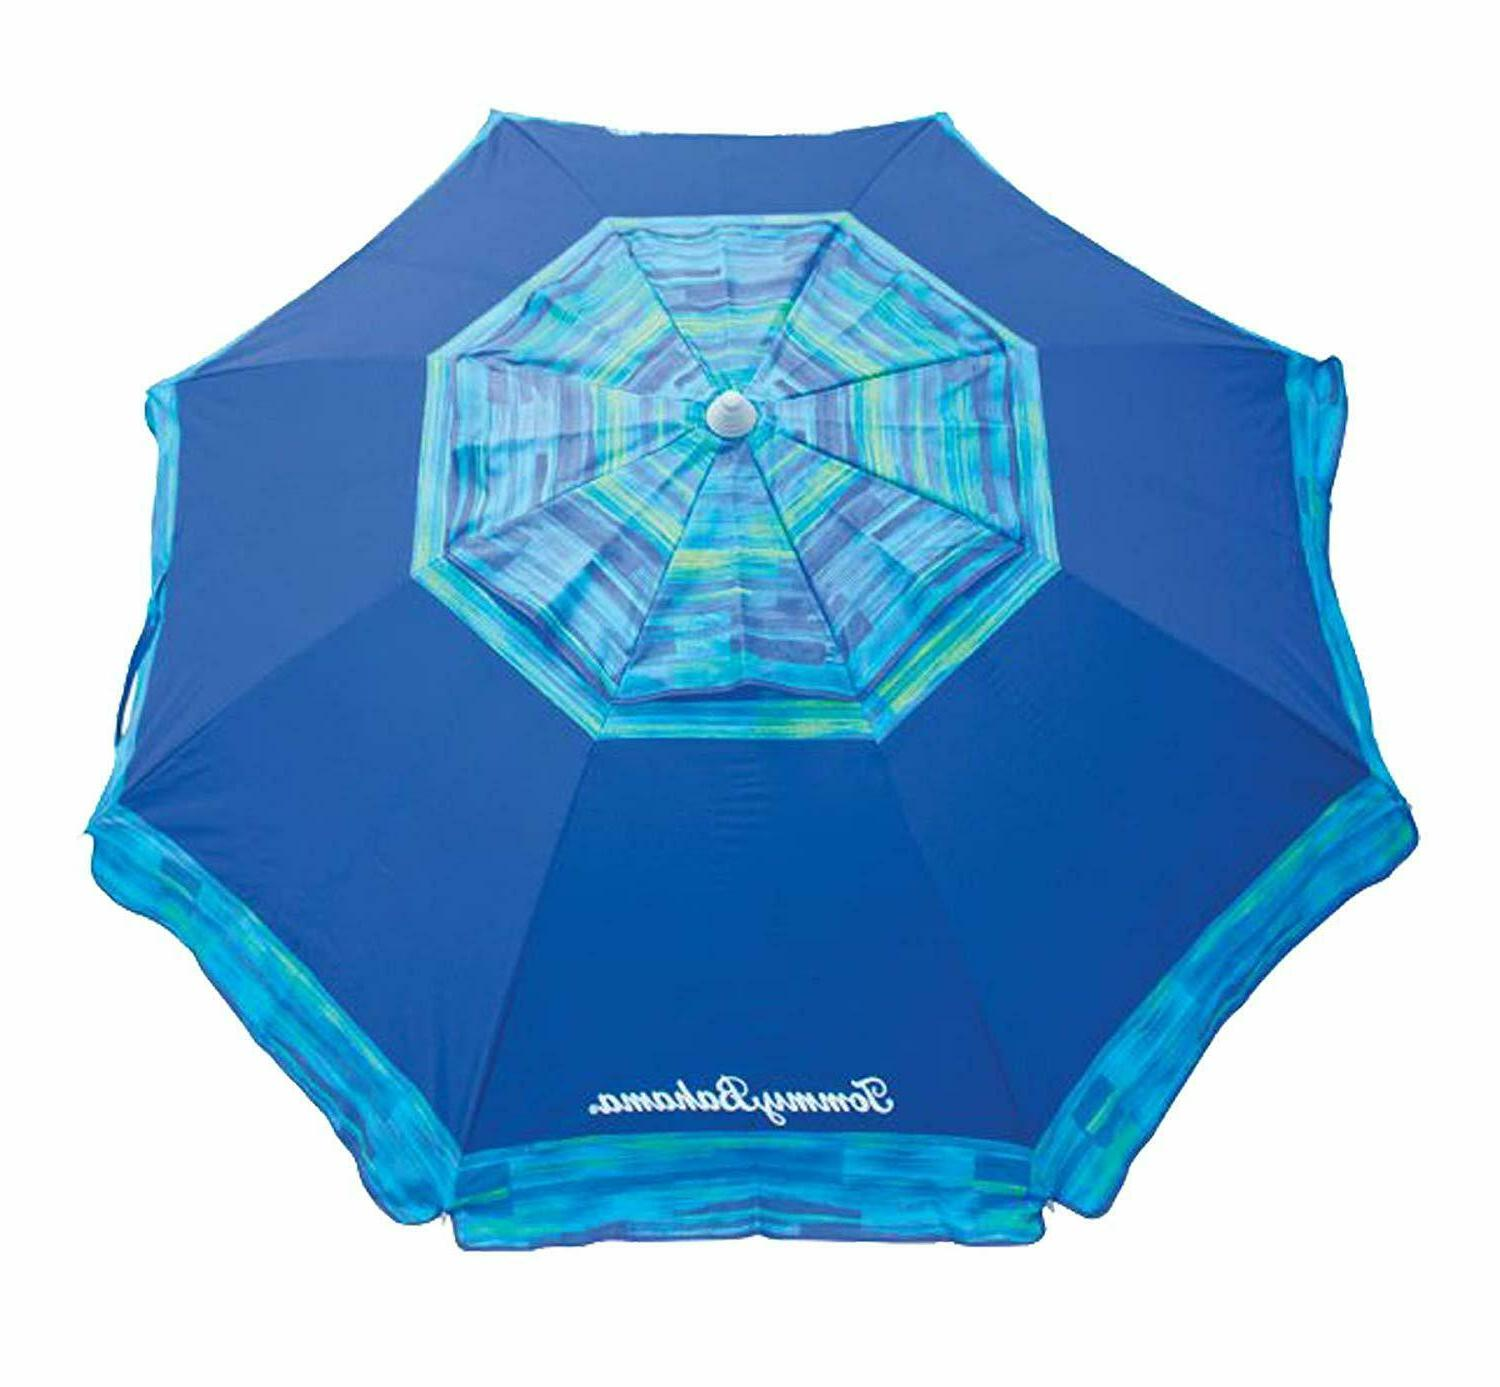 Tommy Bahama 7 ft Beach Umbrella Collection - Blue